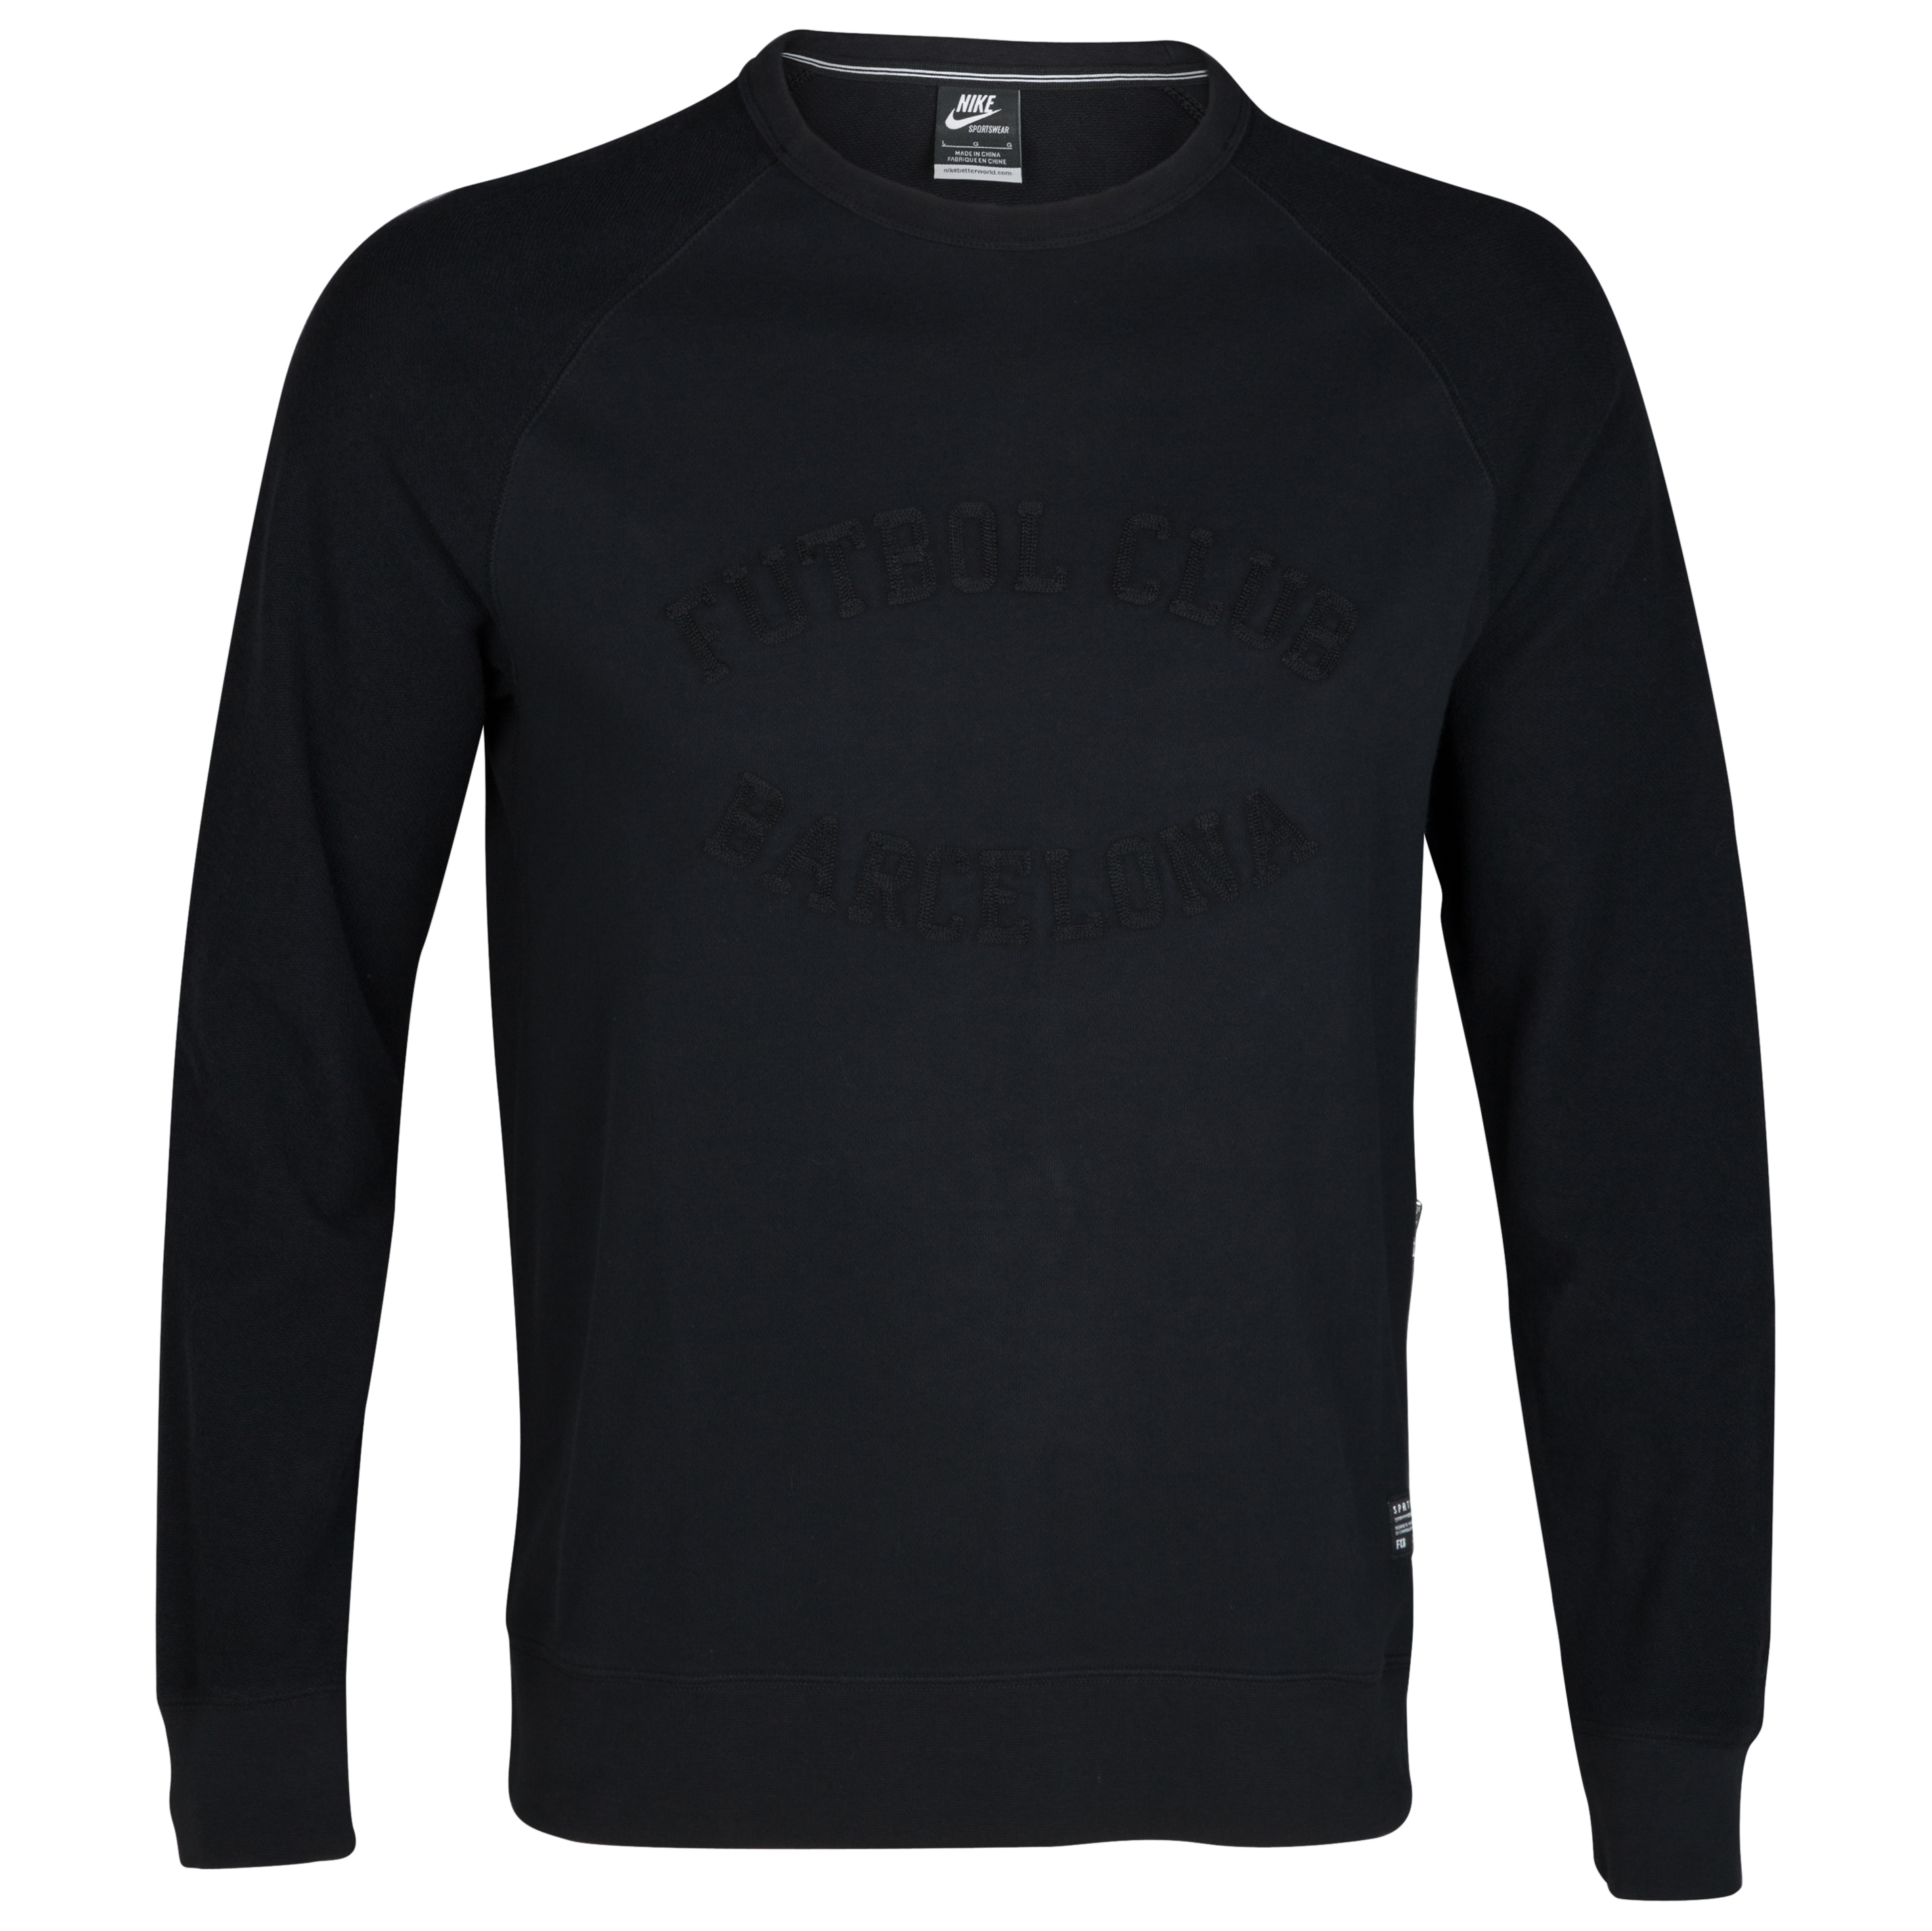 Barcelona NSW Crew Neck Sweatshirt - Black